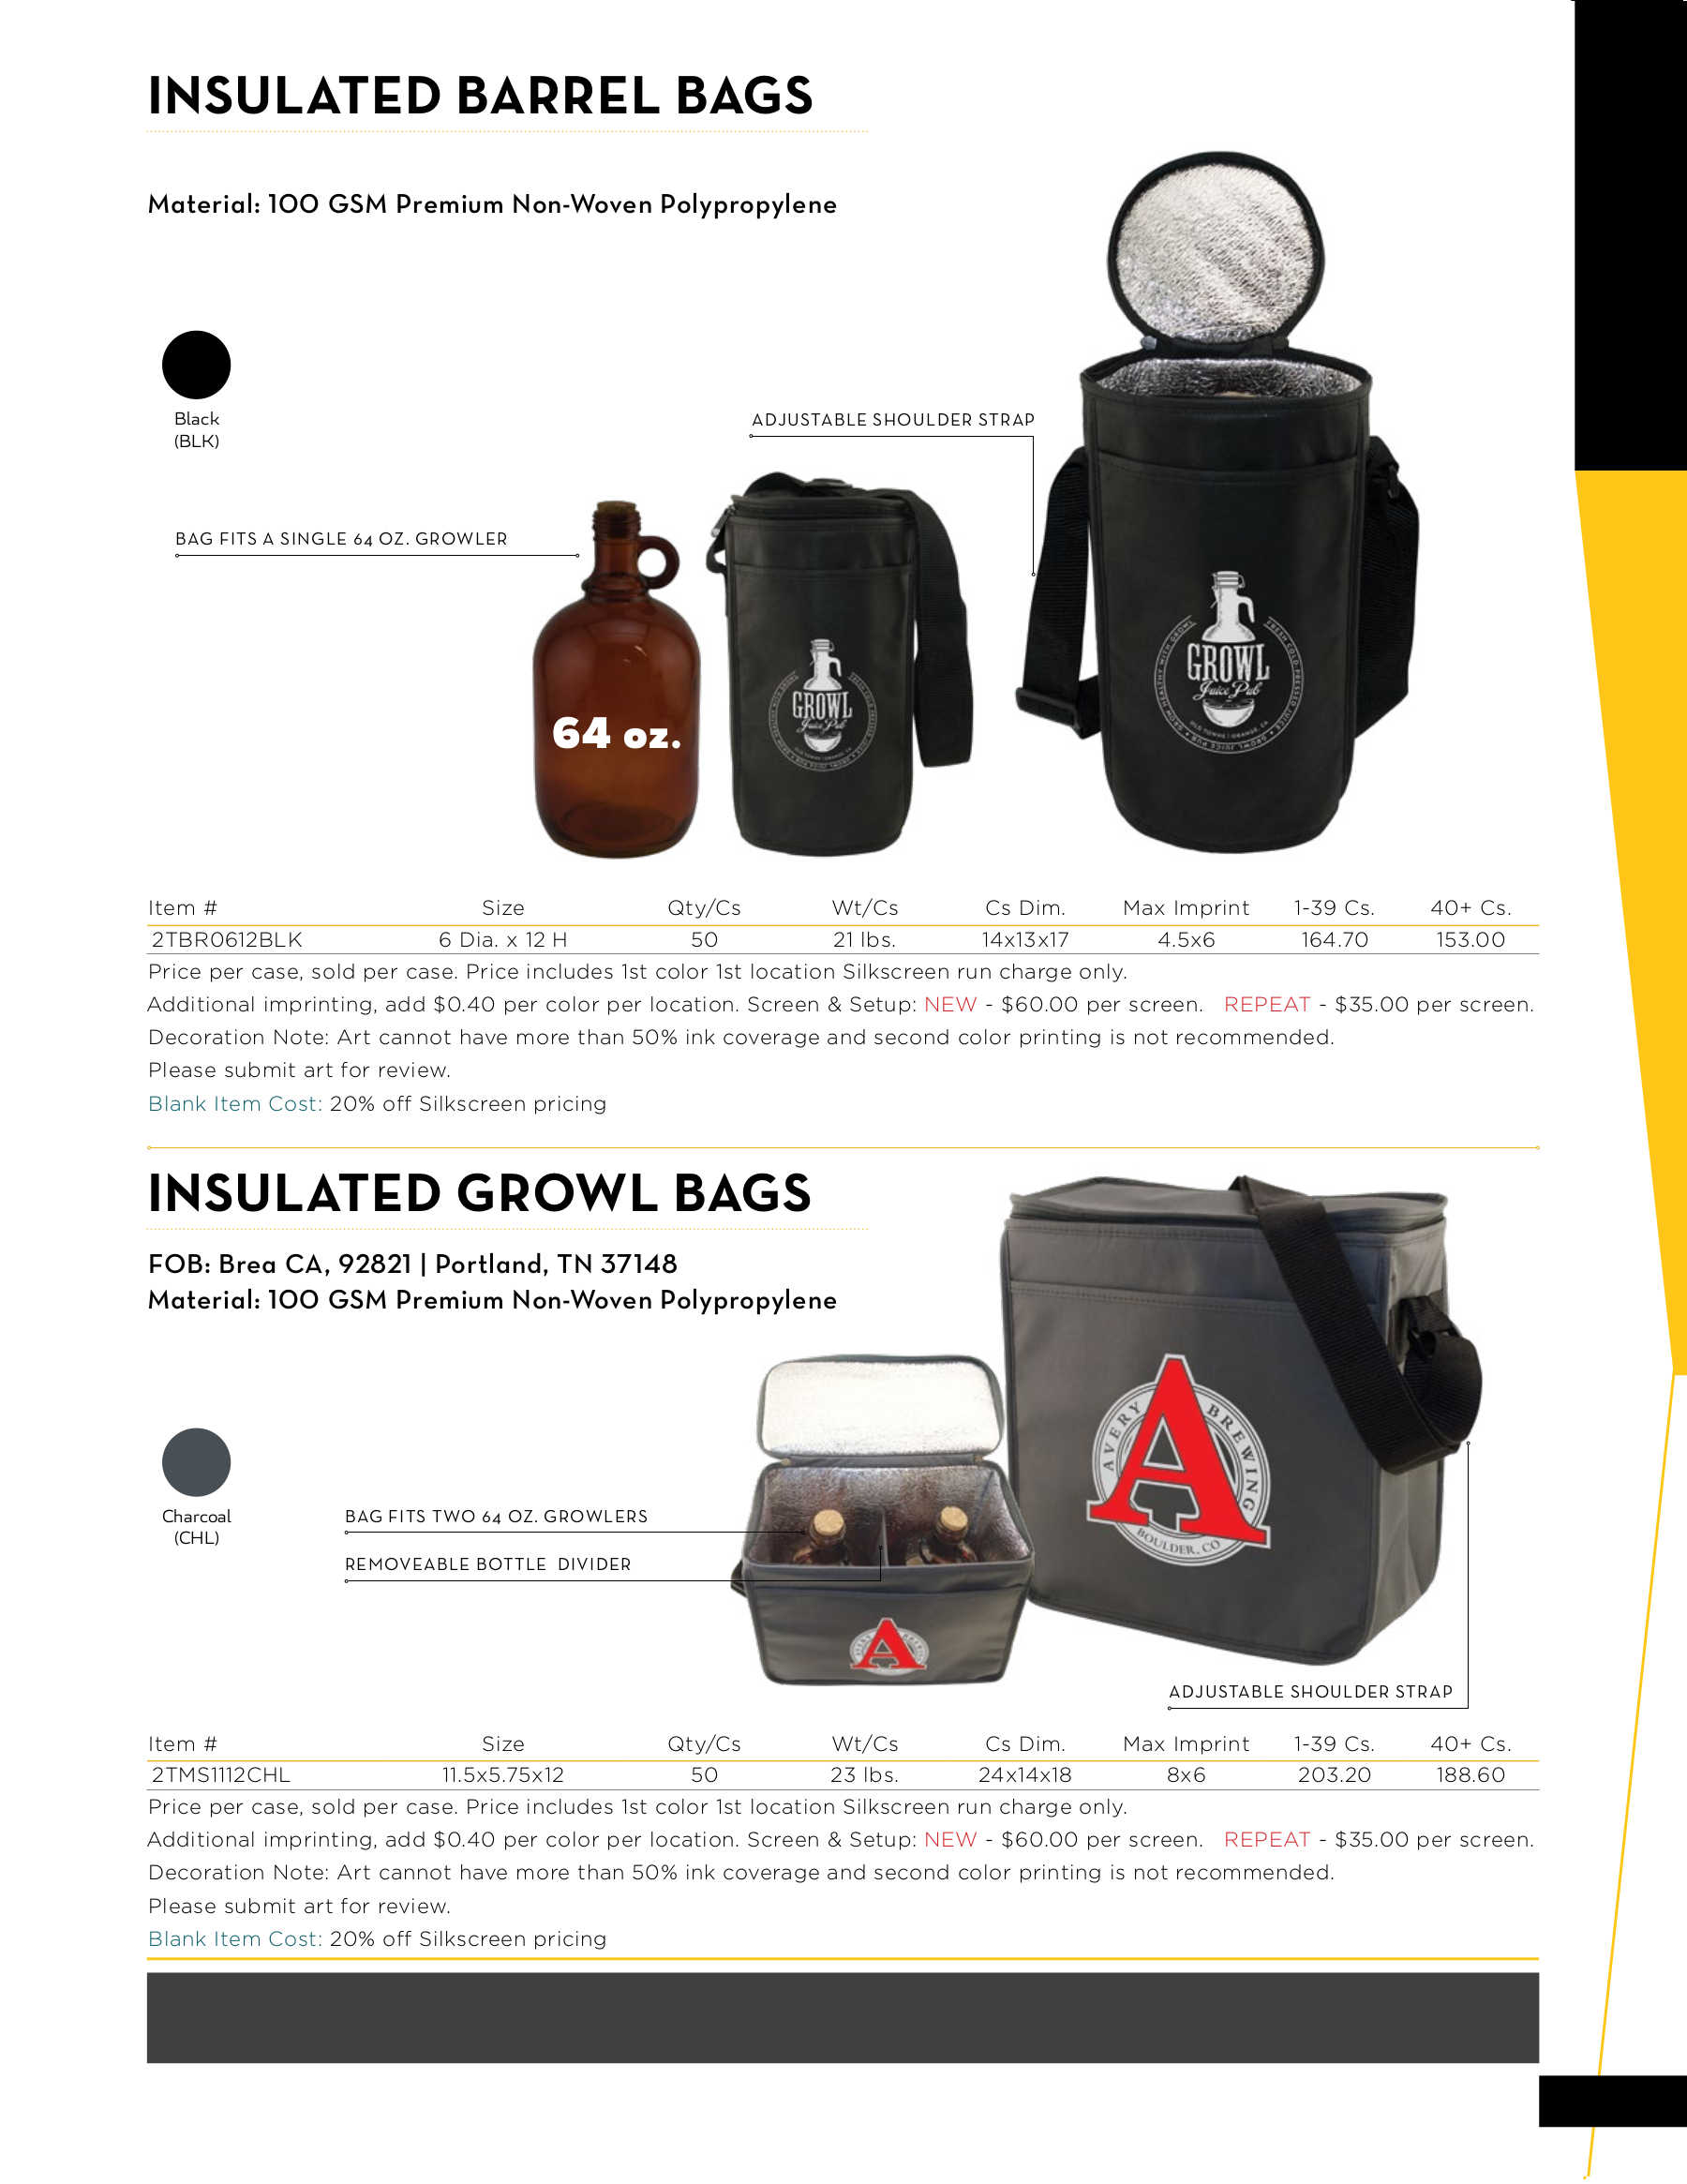 Insulated Barrel and Growl Bags